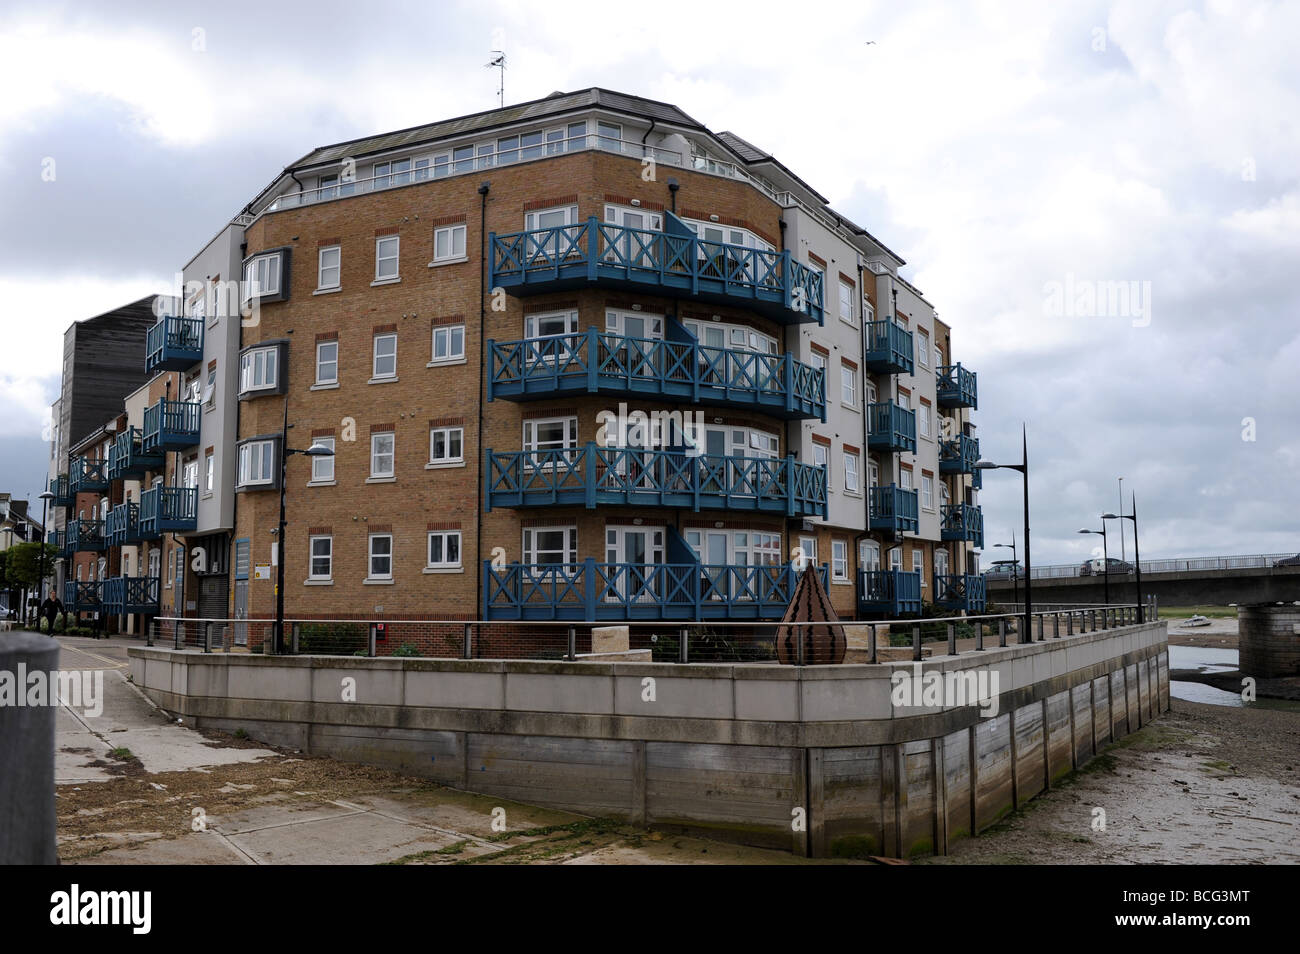 The Ropetackle arts centre and housing development at Shoreham by sea in Sussex UK - Stock Image